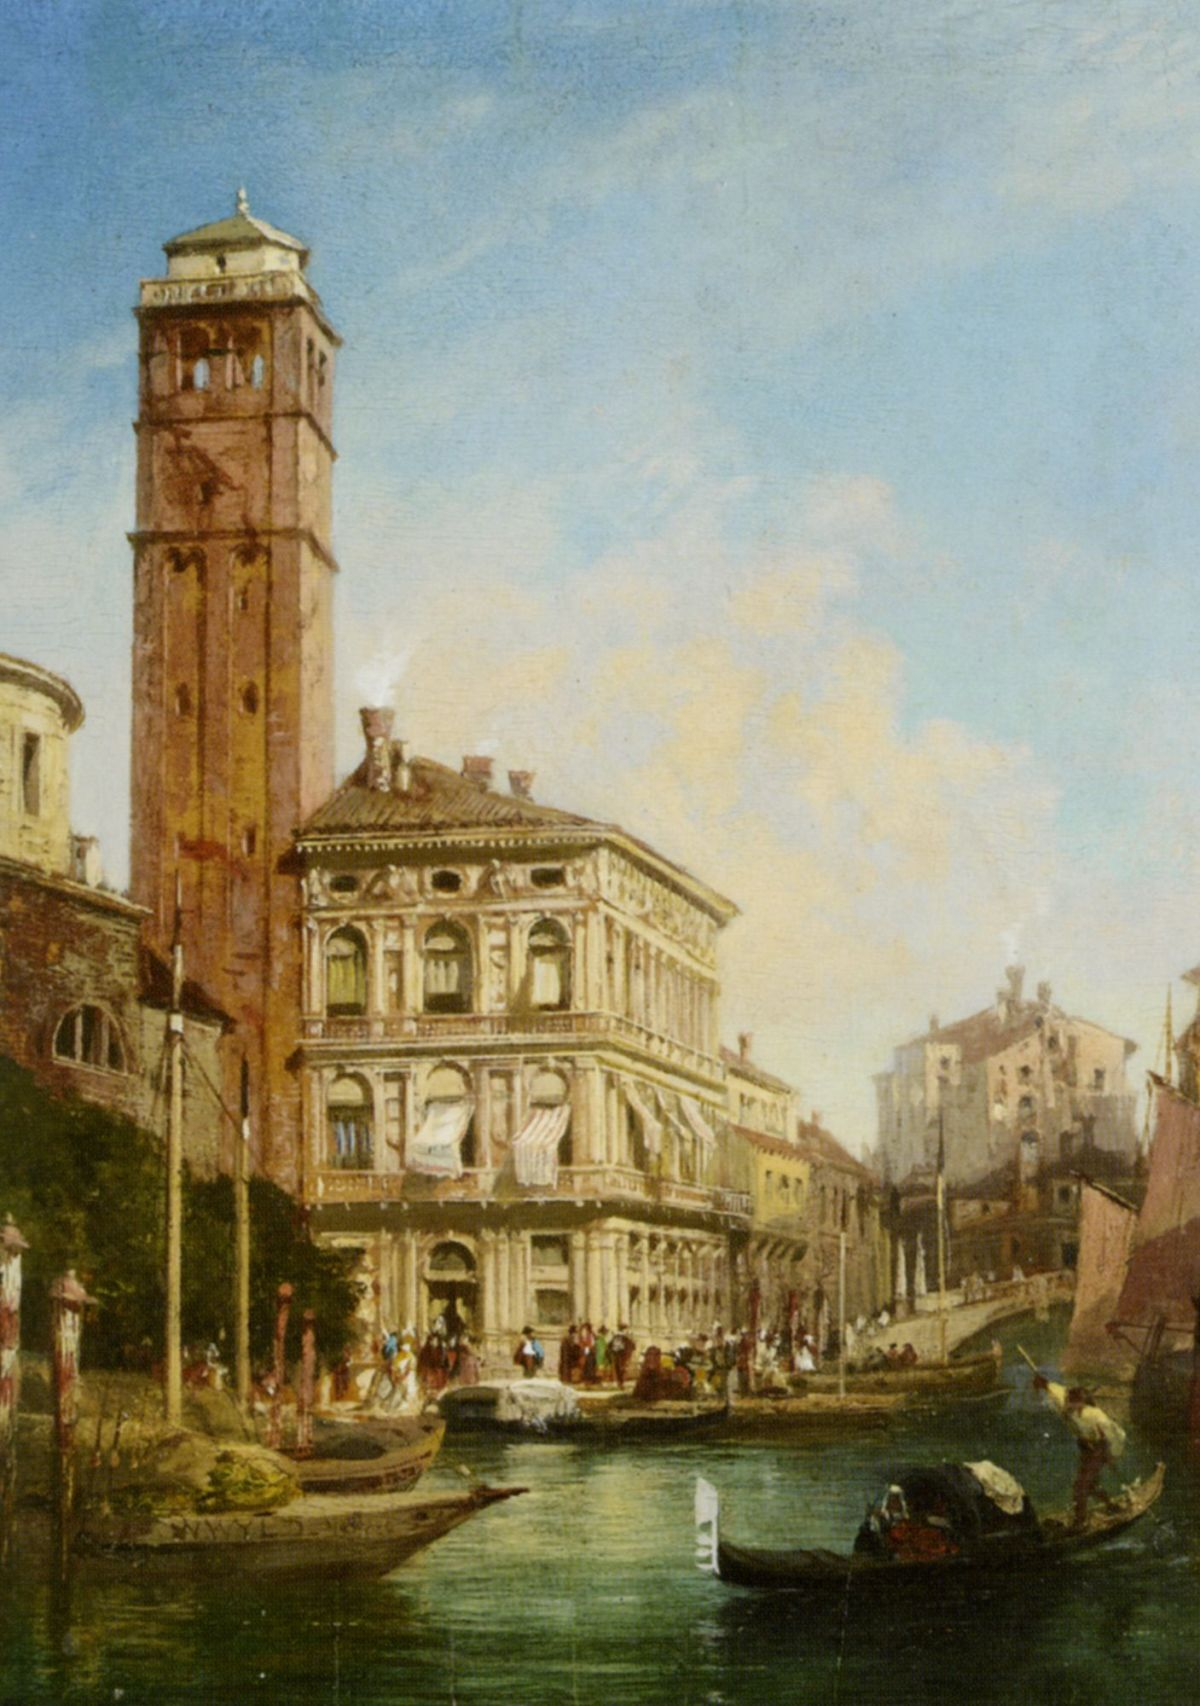 San Geremia with the Palazzo Labia Venice by William Wilde